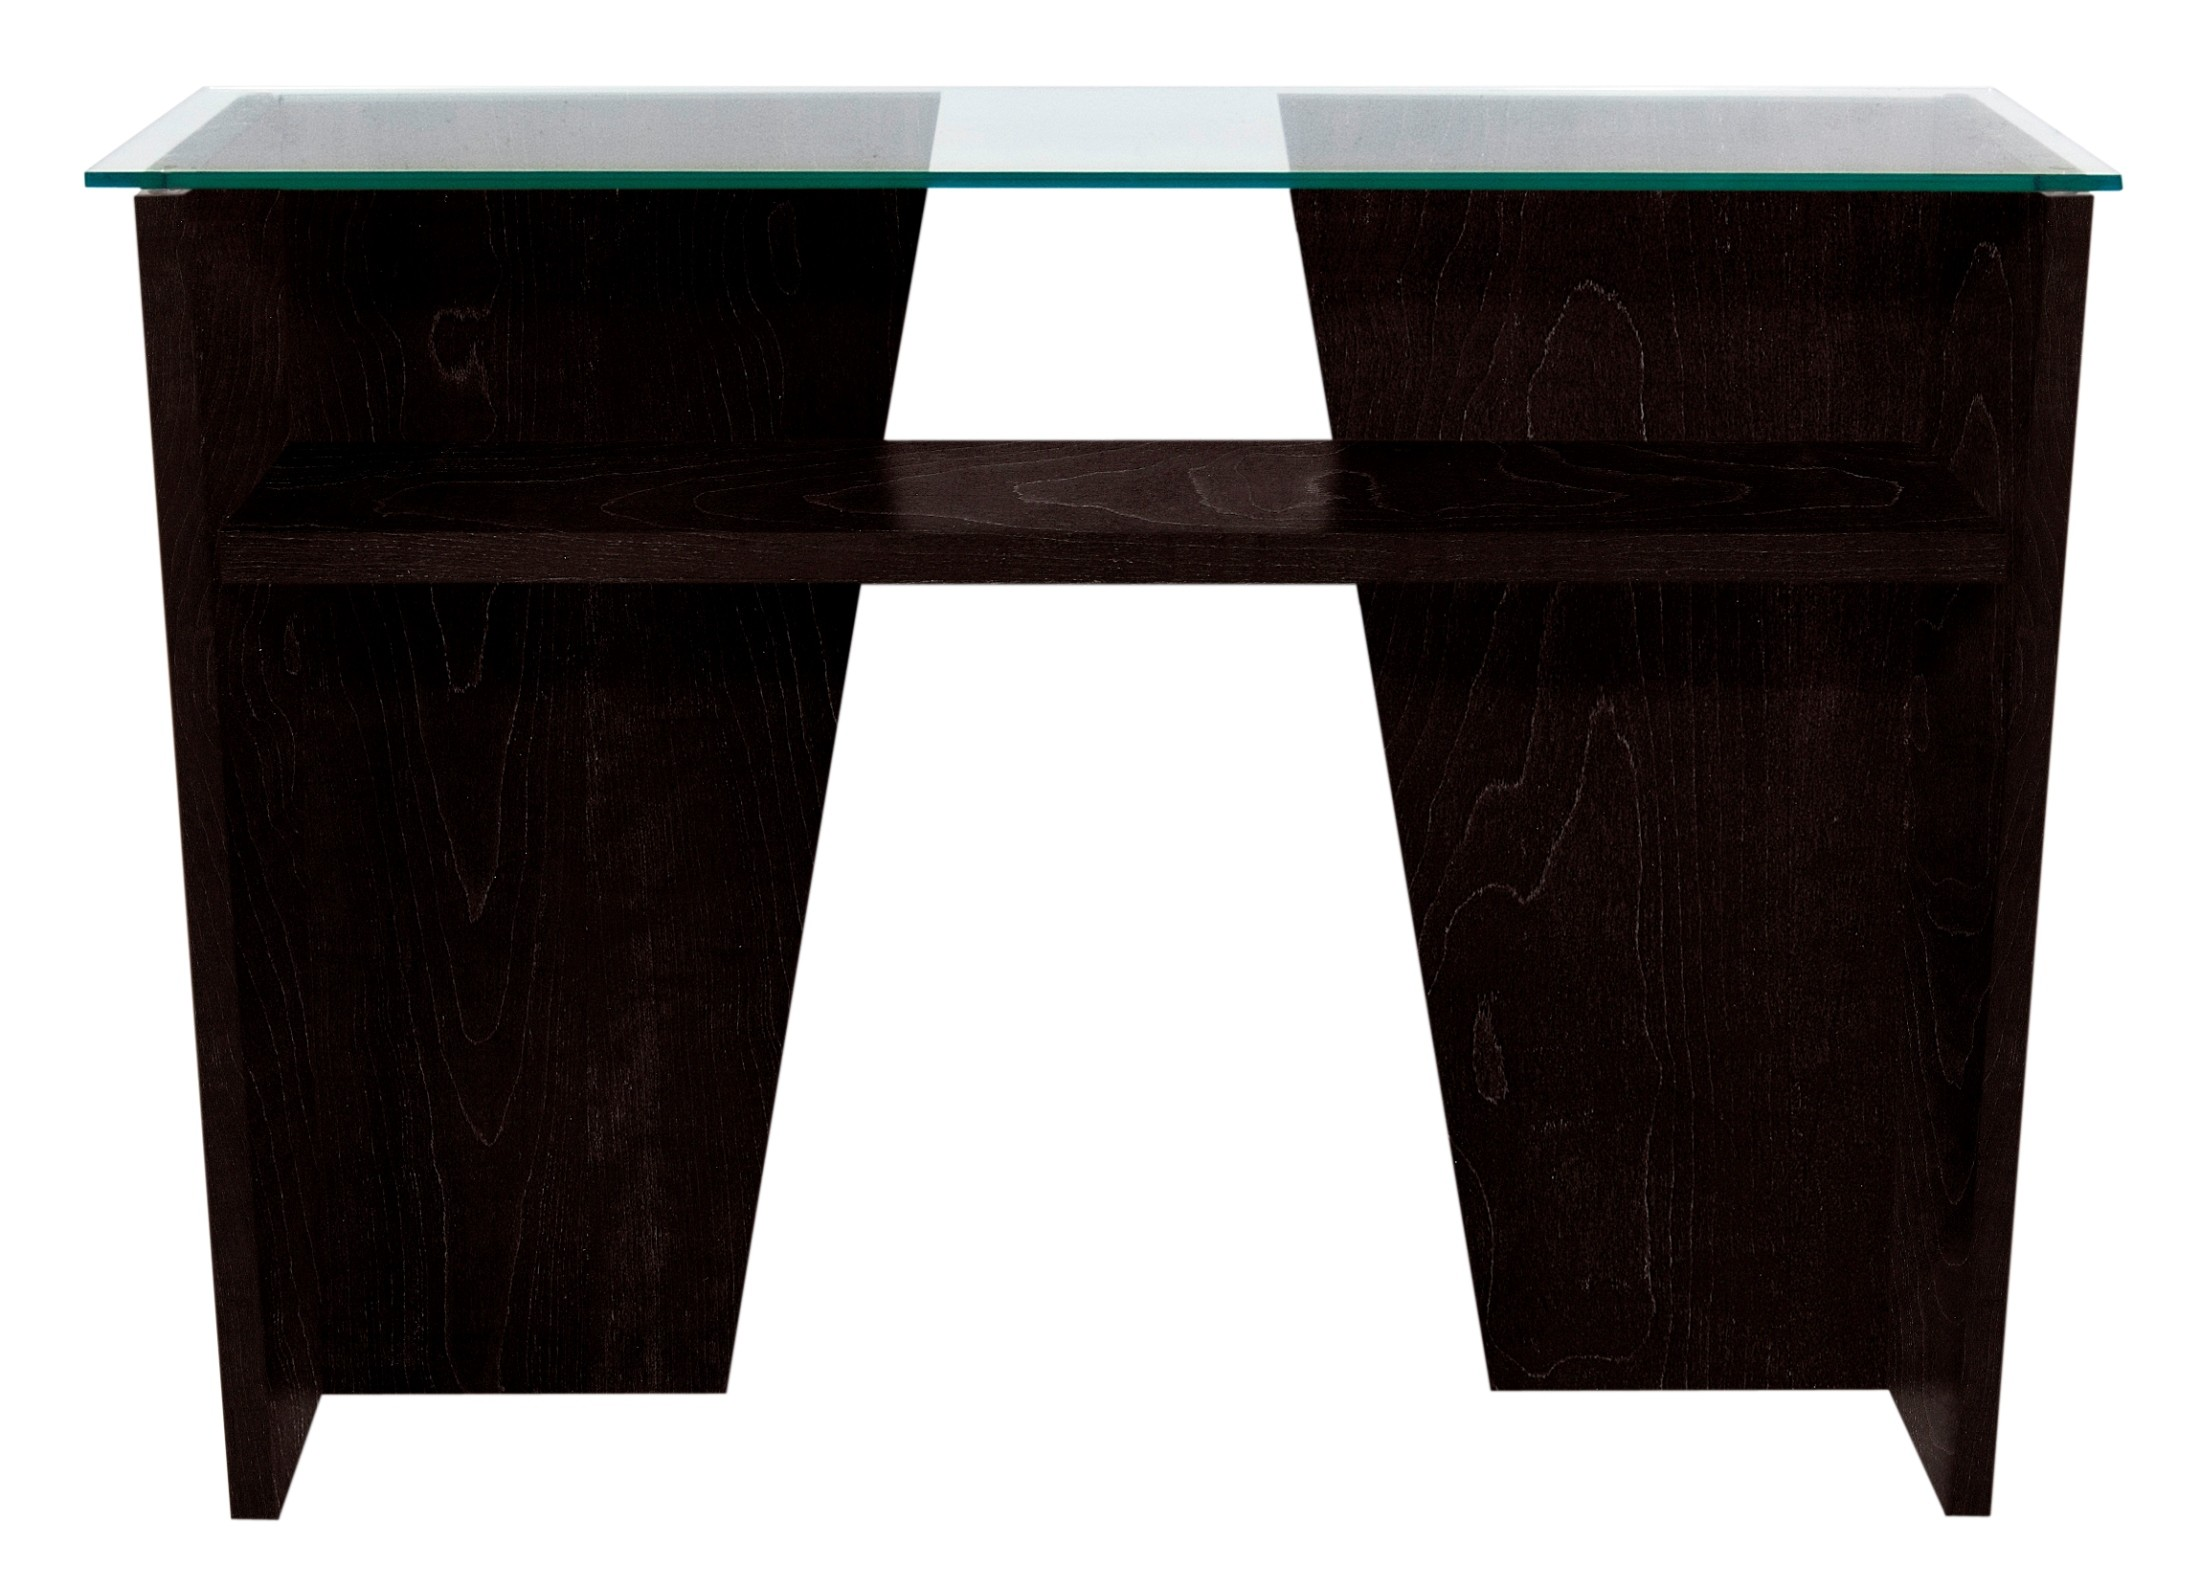 oliva wenge console table from tema home. Black Bedroom Furniture Sets. Home Design Ideas